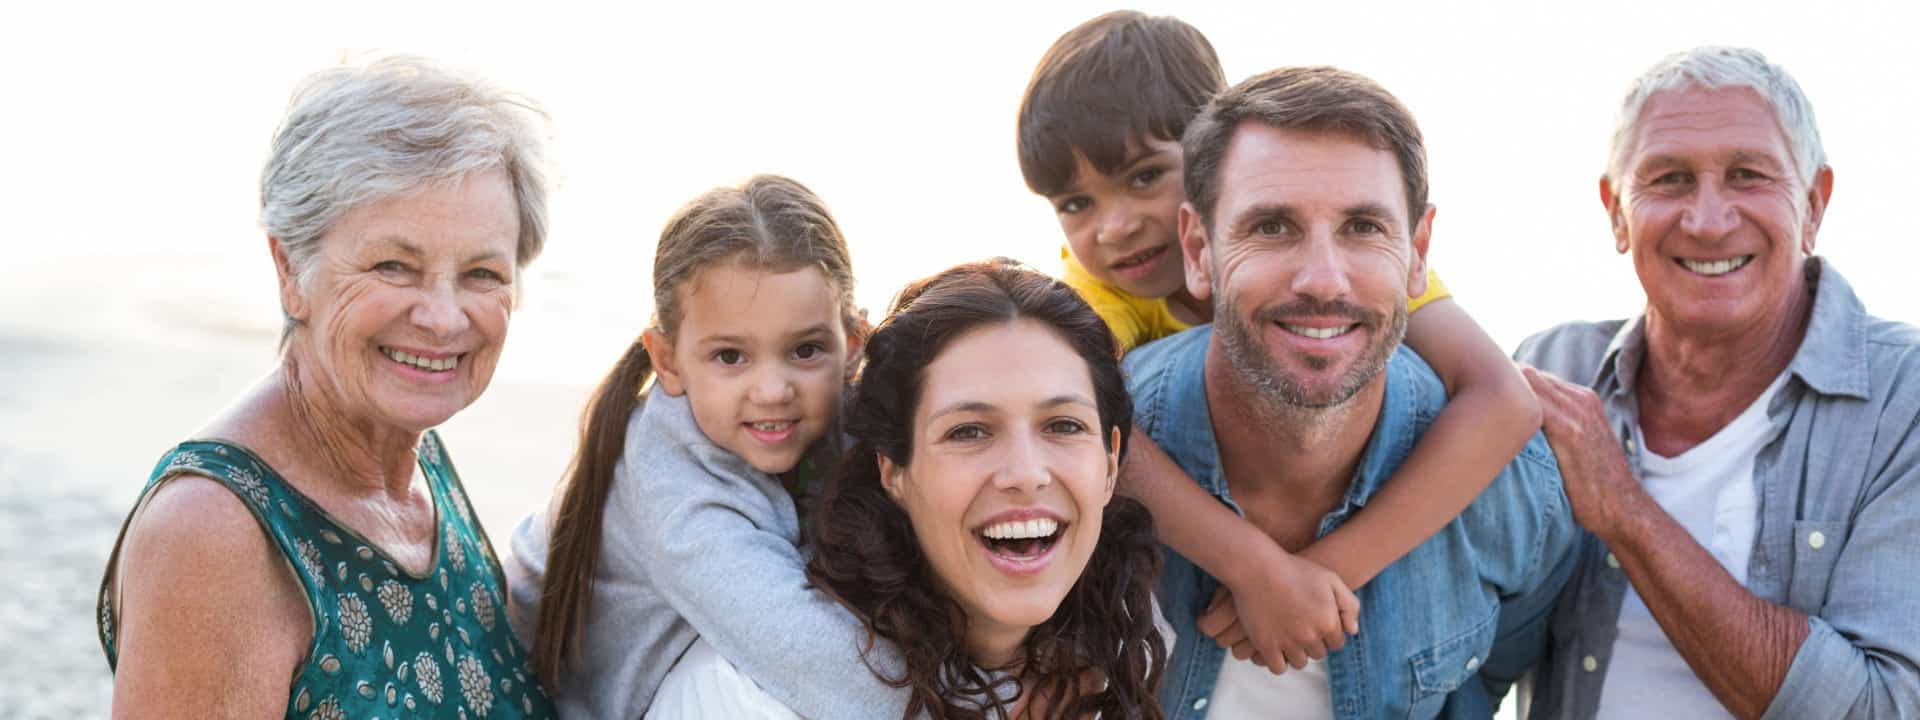 Dental Services at Family Dentistry on Montford